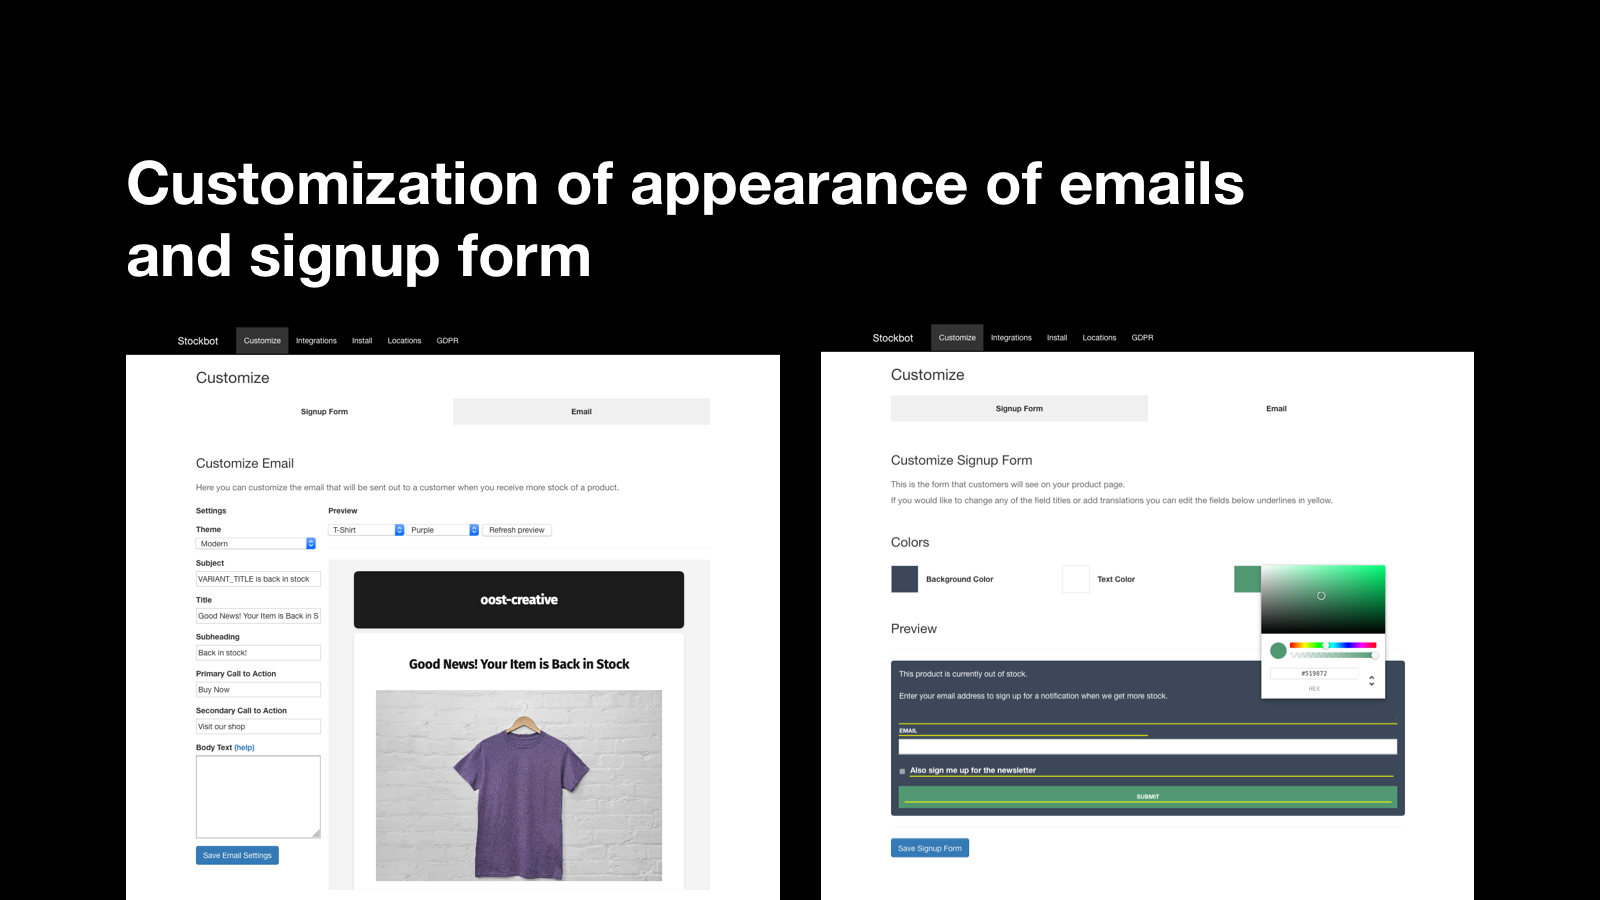 Customization of appearance of emails and signup form